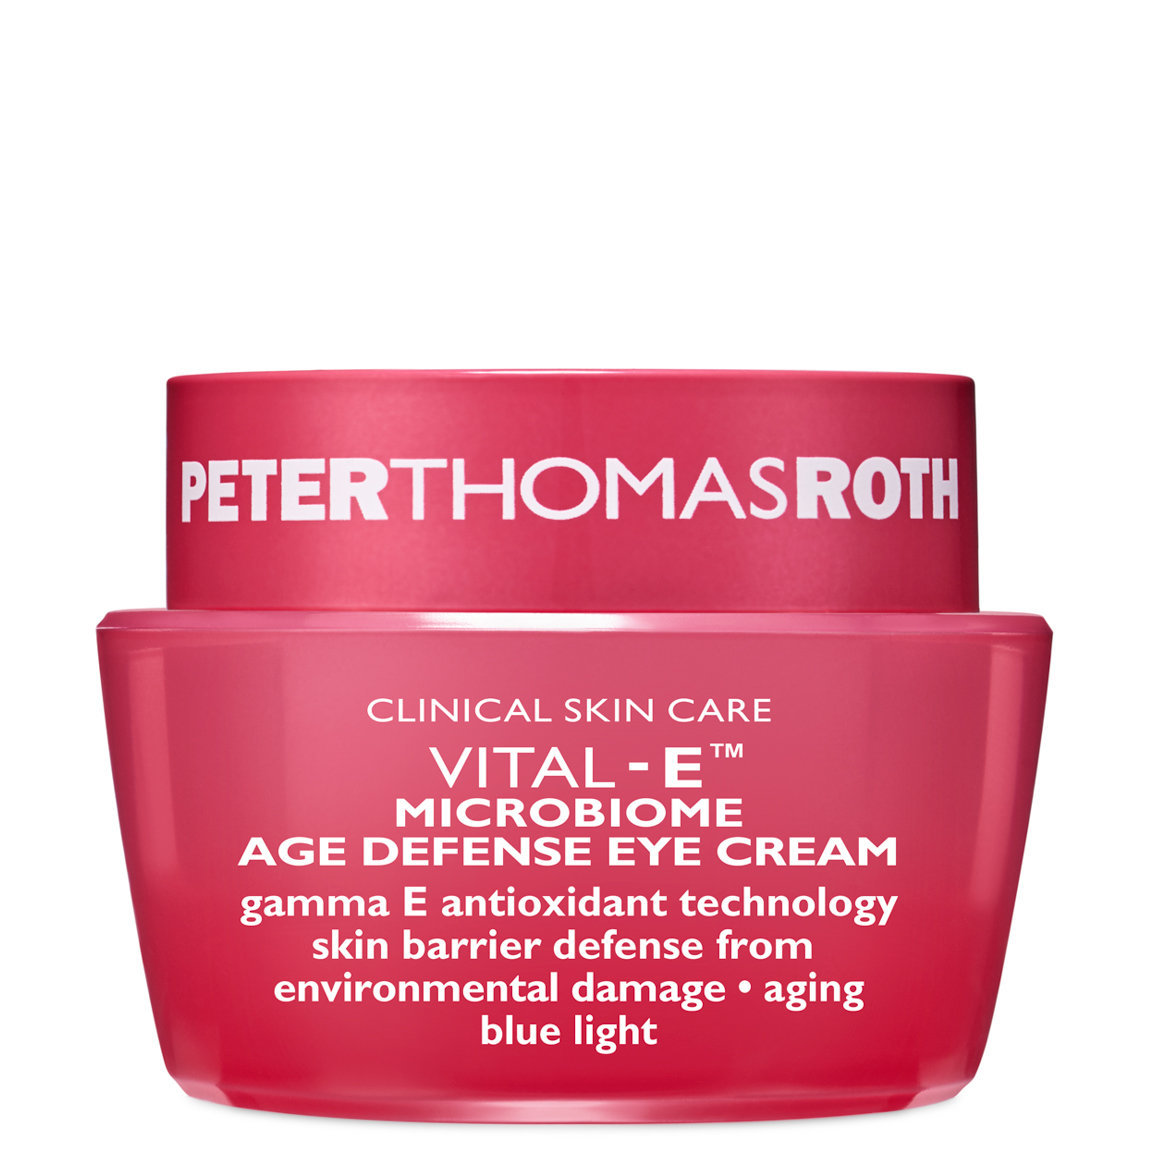 Peter Thomas Roth Vital E Microbiome Age Defense Eye Cream product swatch.